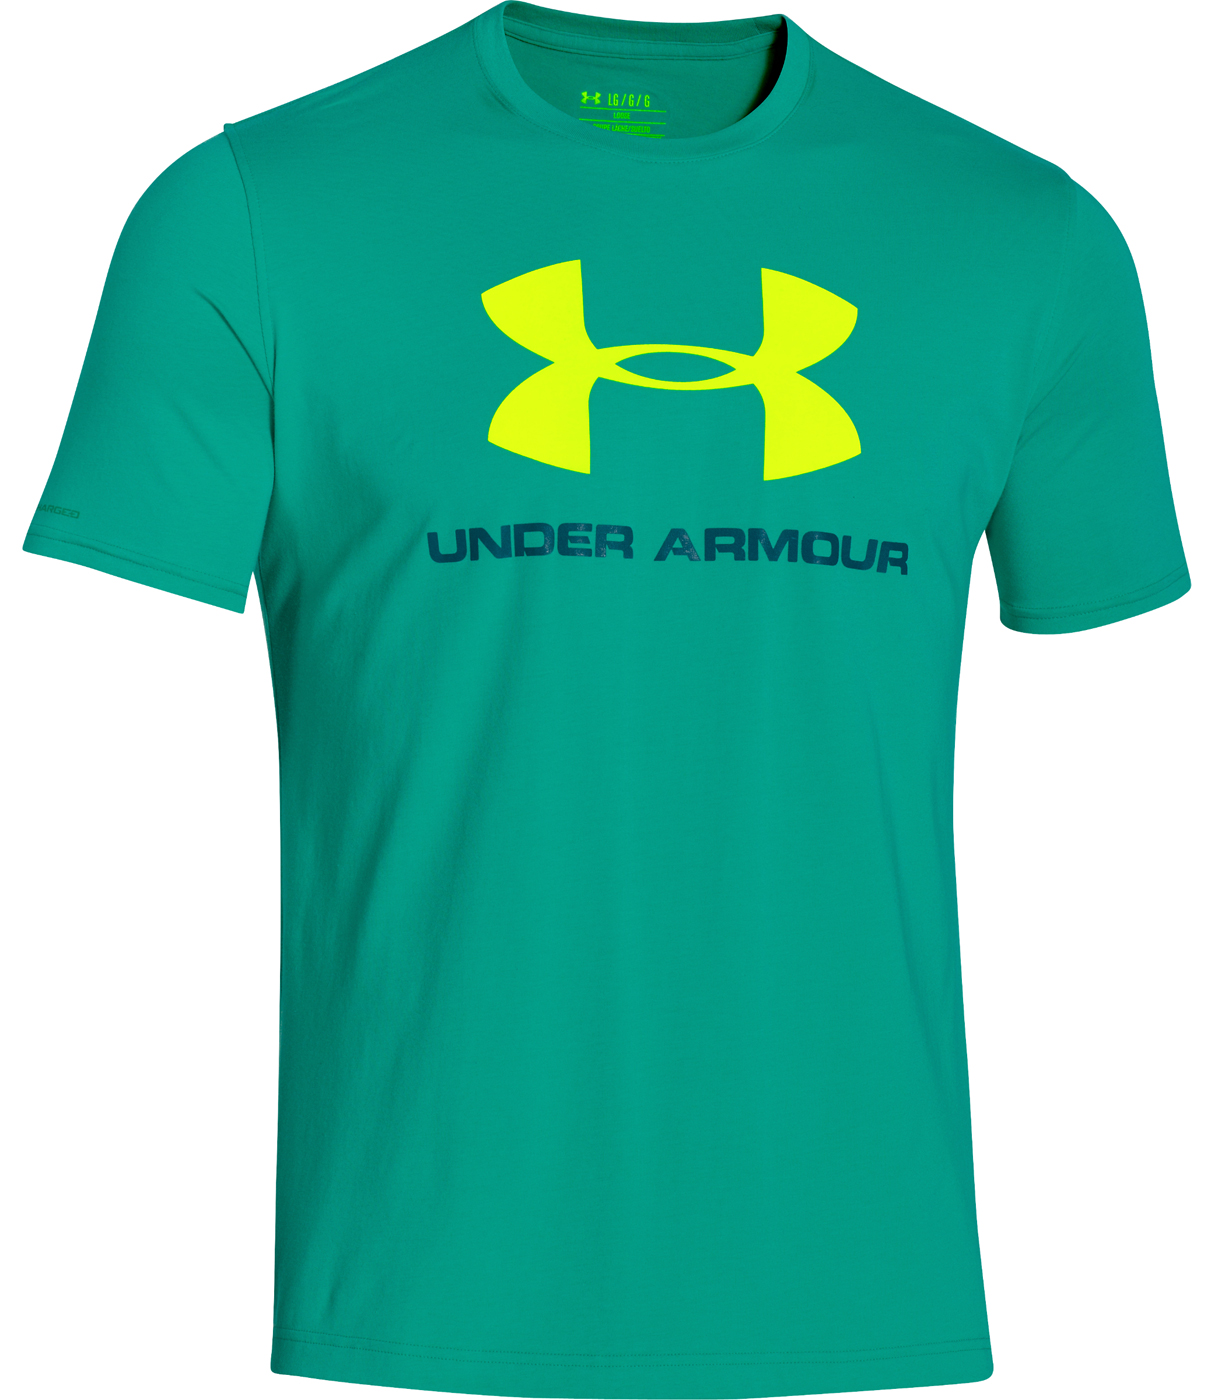 Under armour t shirts for men for Under armour i will shirt